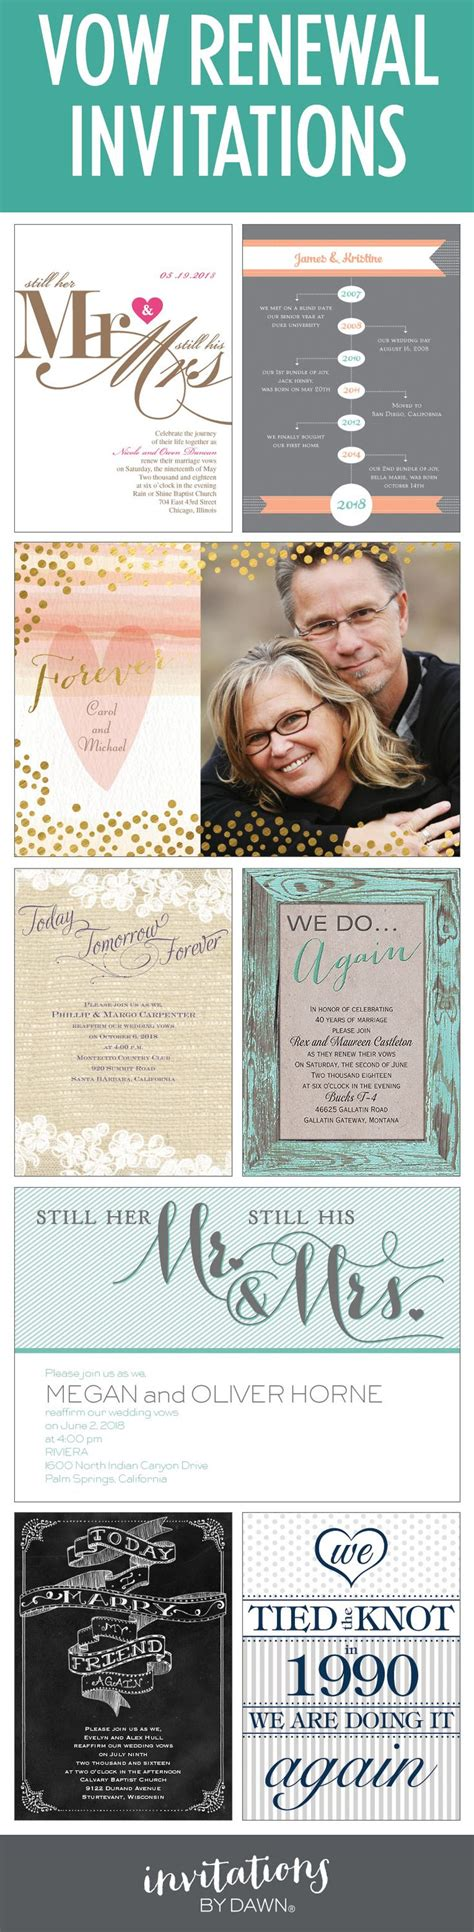 a guide to vow renewal etiquette anniversaries